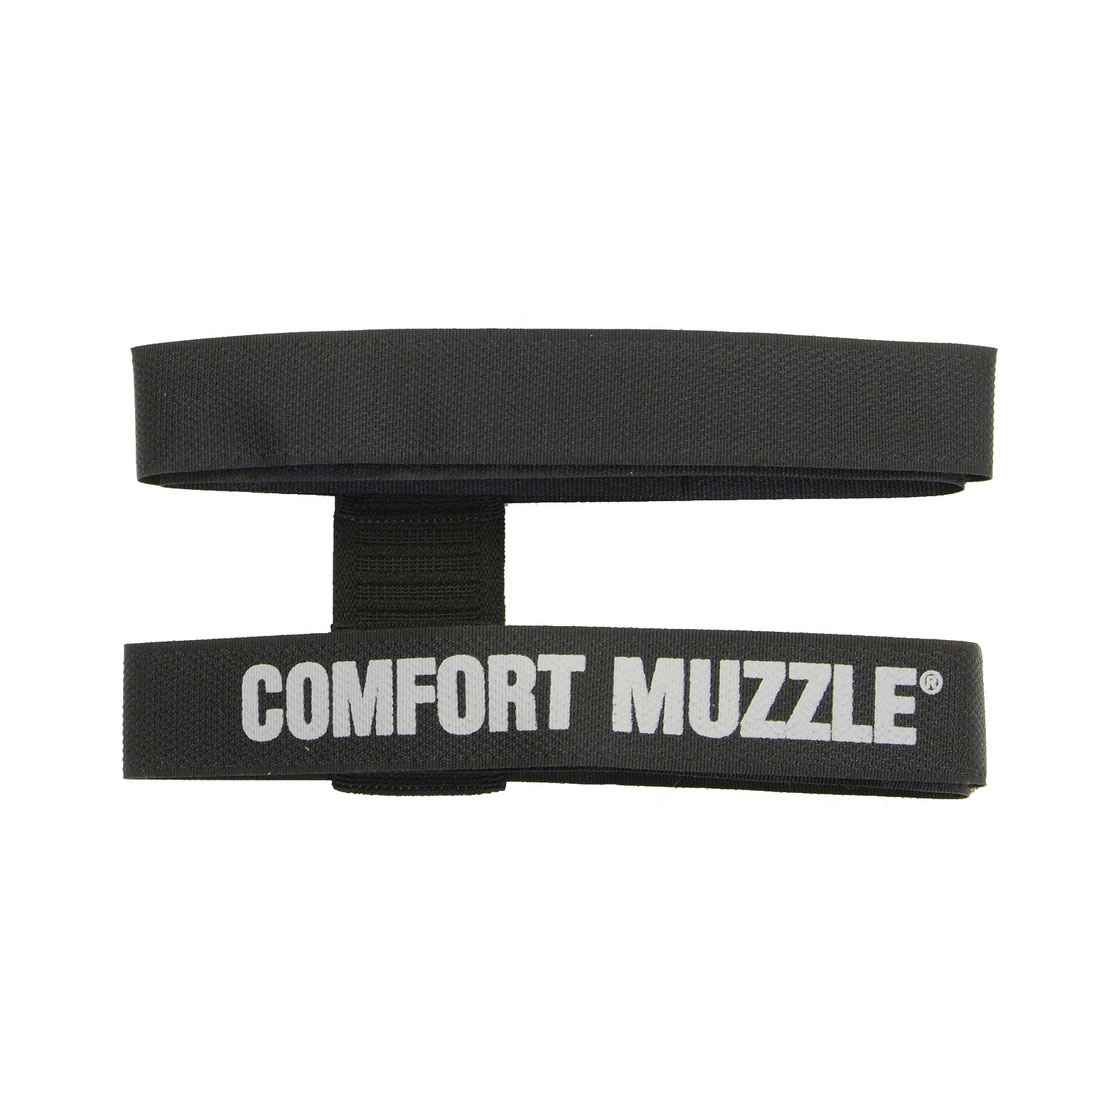 Adjustable Comfort Muzzle® for Dogs